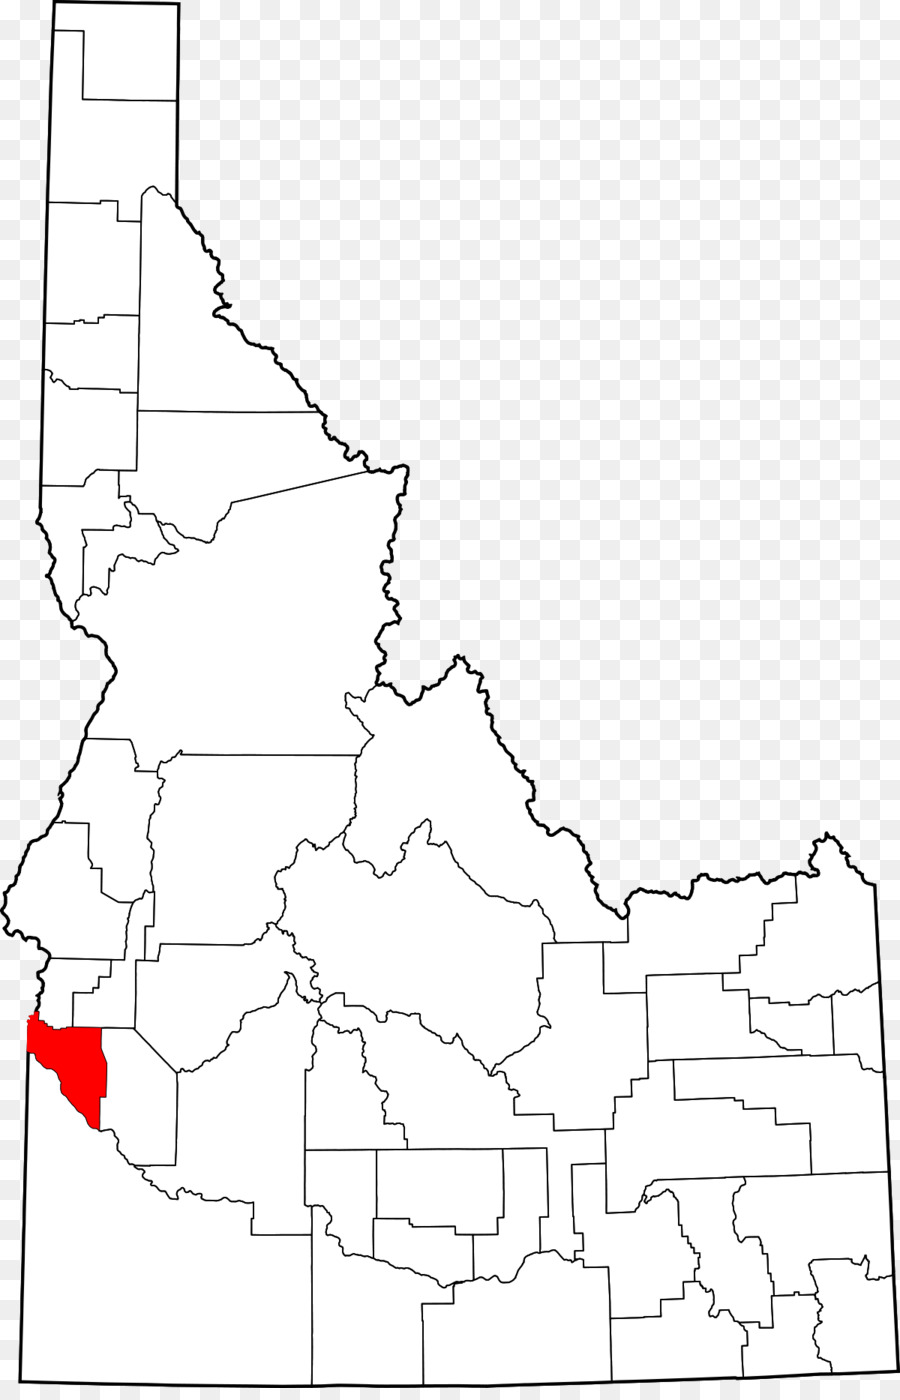 Idaho Map By County.Elmore County Idaho Idaho County Idaho Bear Lake County Idaho